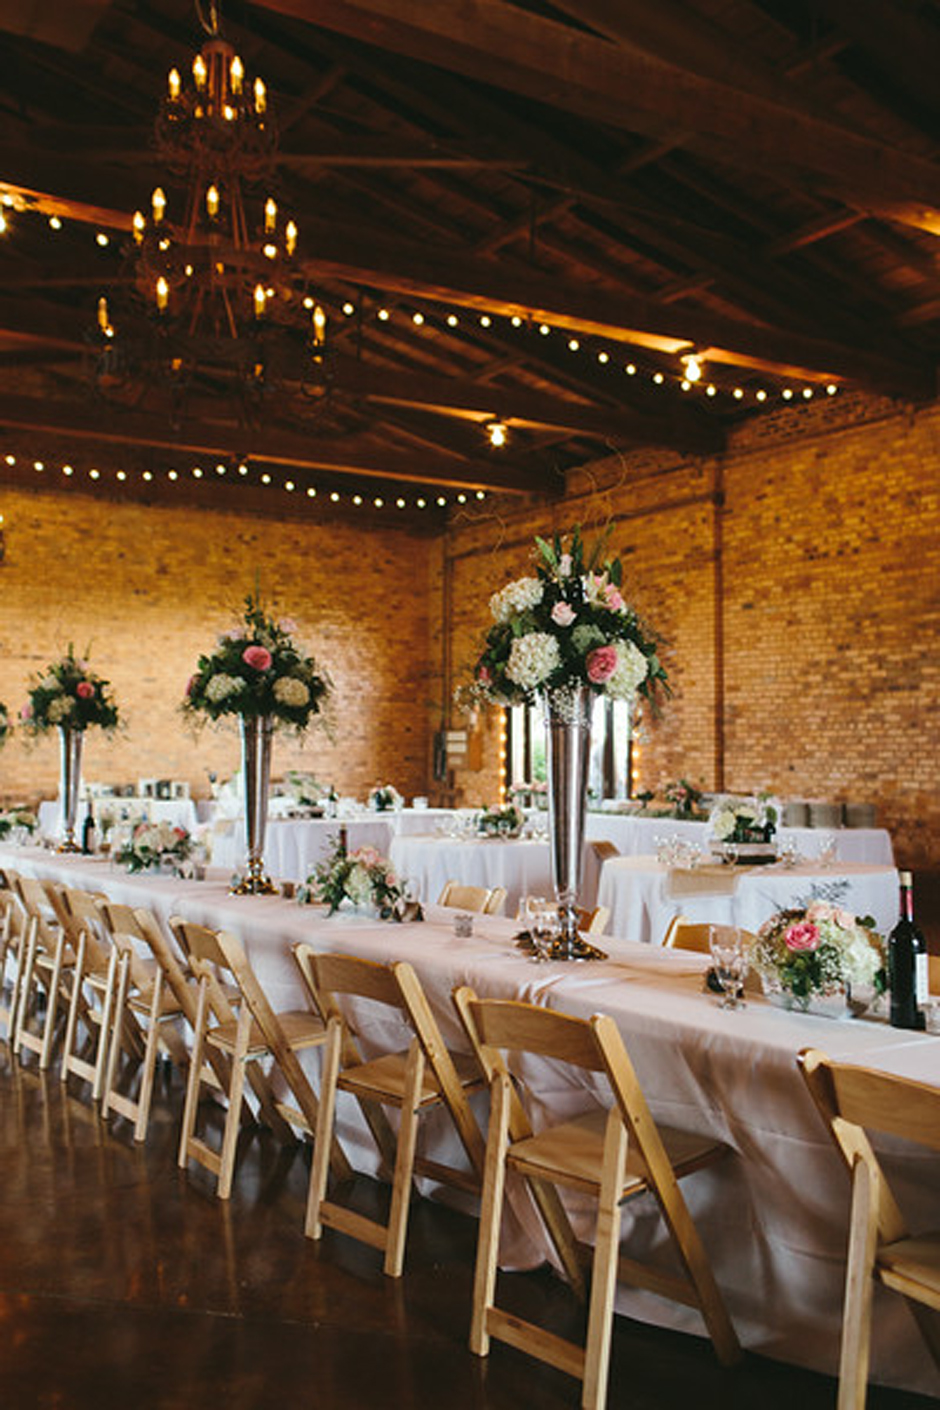 Where Can I Rent Tables And Chairs Natural Wooden Folding Chairs Athens Atlanta Lake Oconee